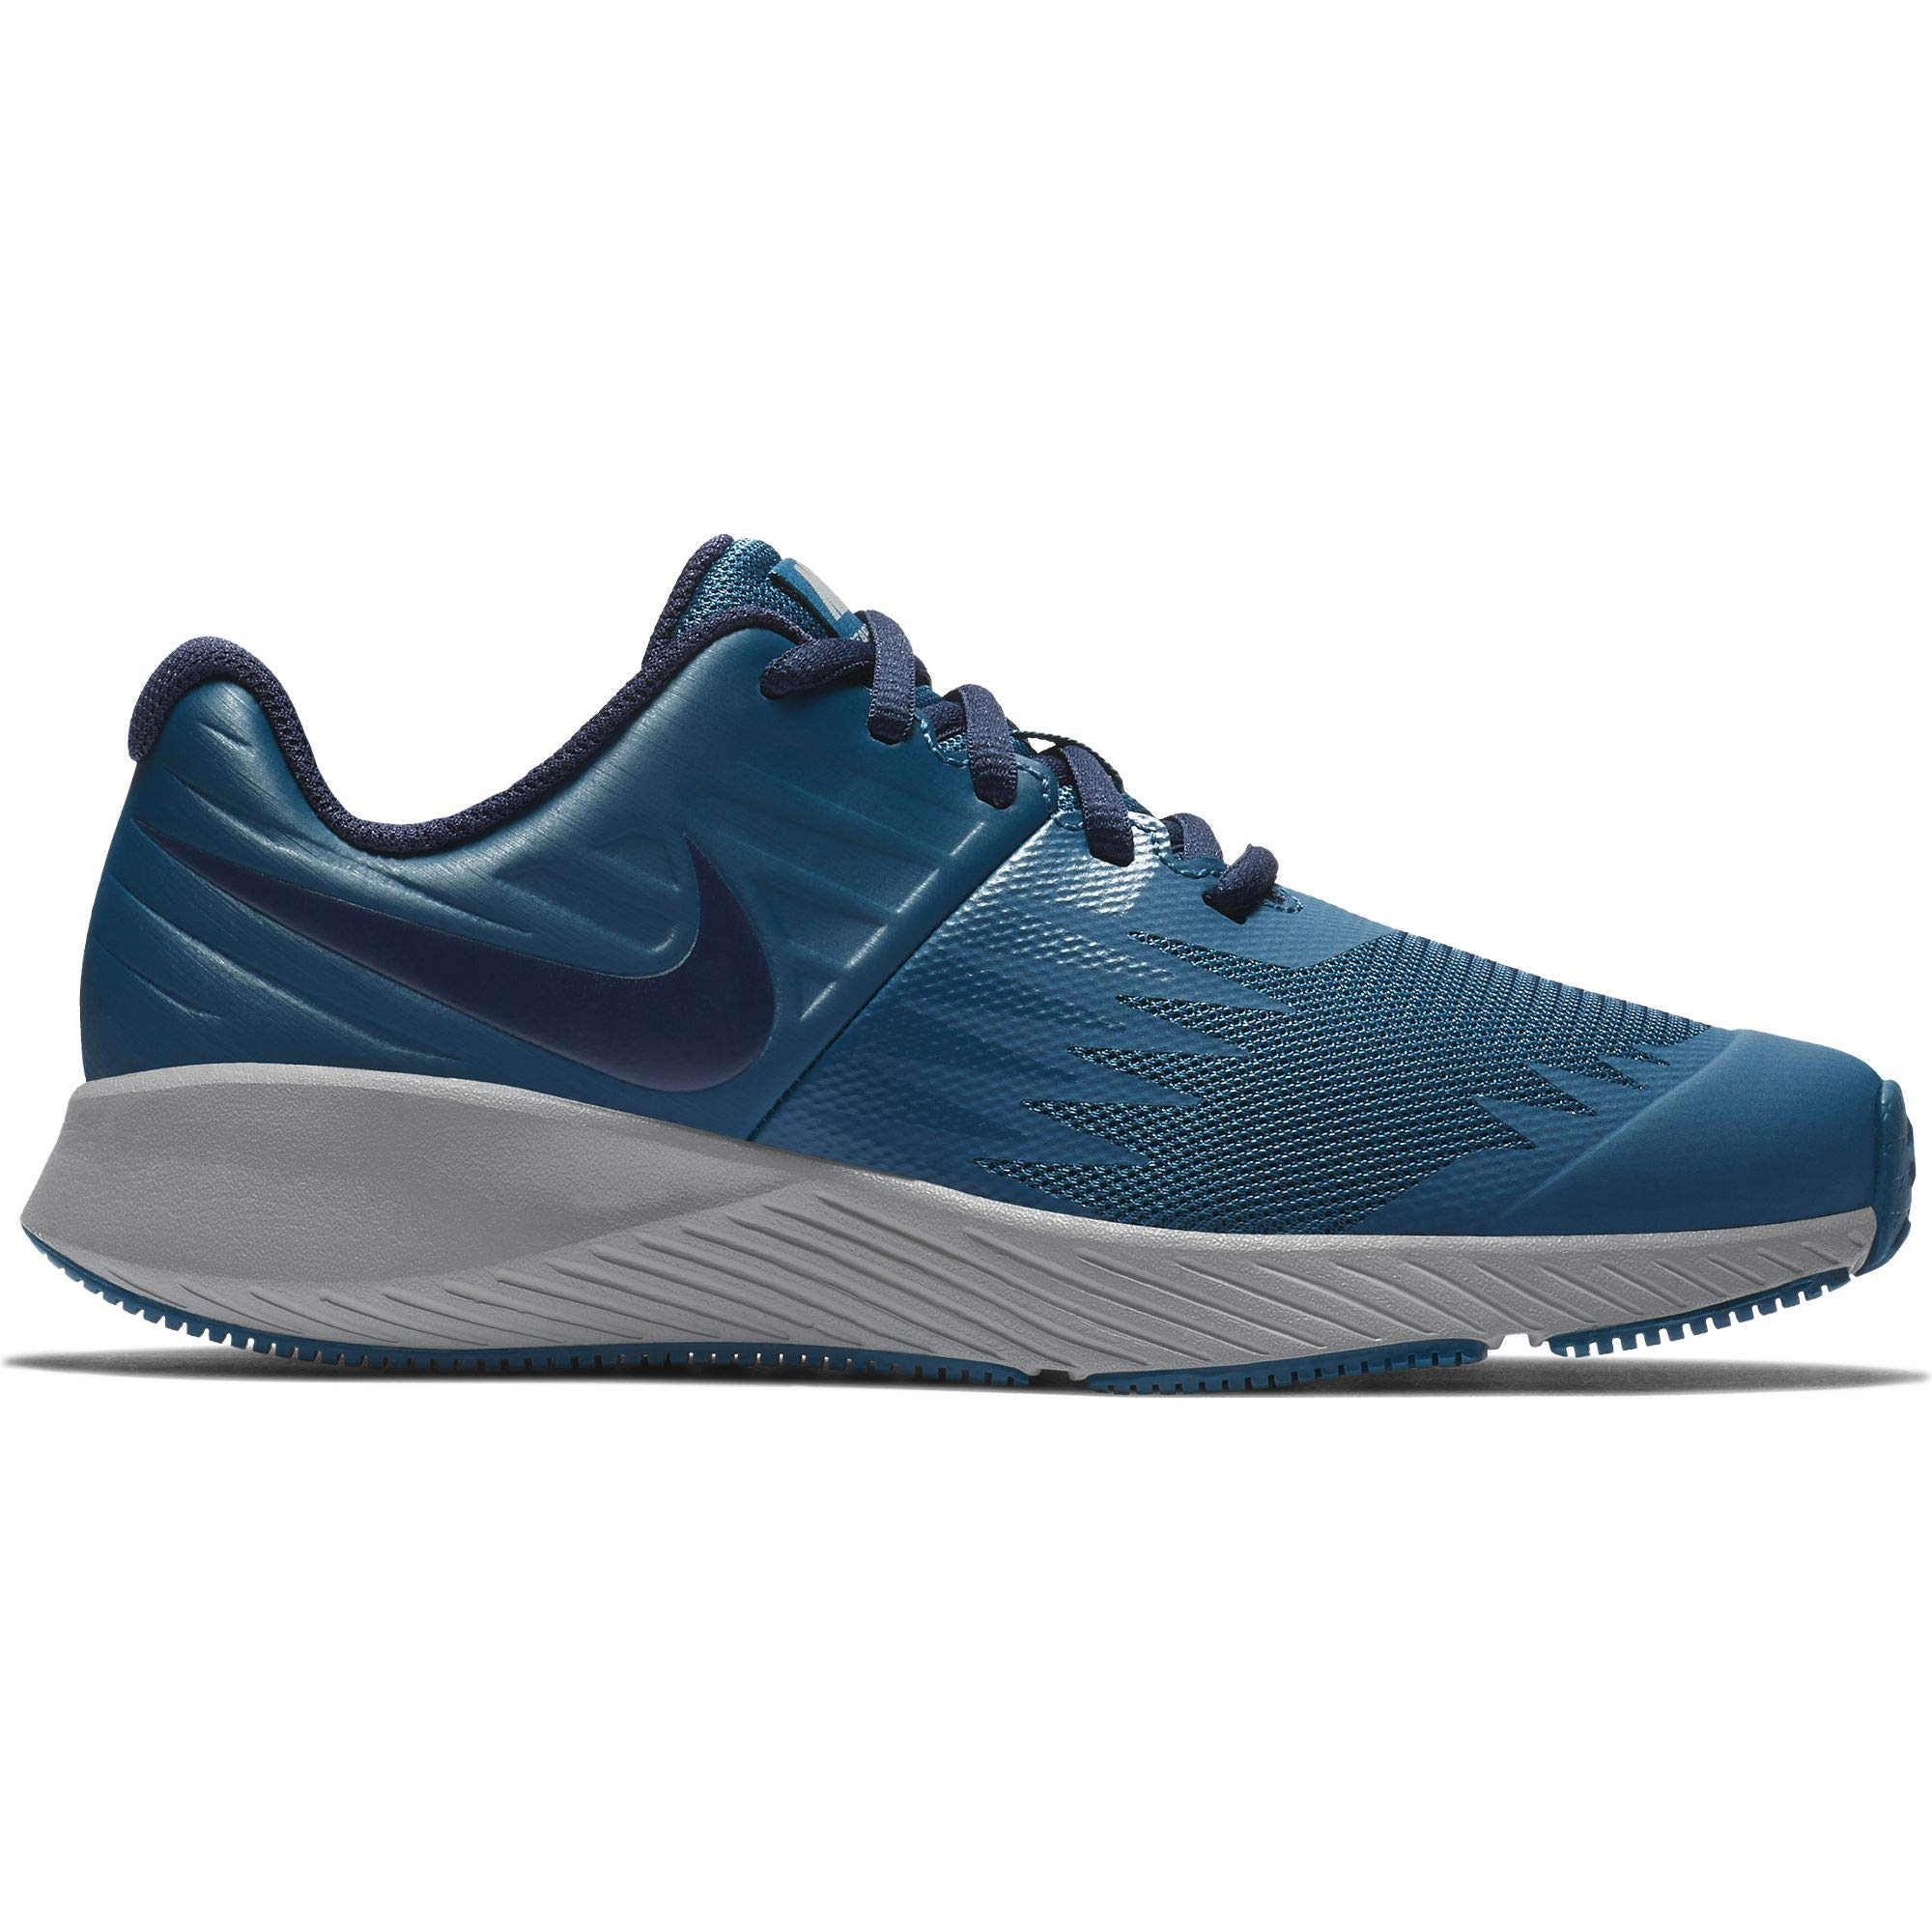 Nike Boy's Star Runner (GS) Running Shoe Blue Force/Blackened Blue/Green Abyss Size 4 M US by Nike (Image #1)